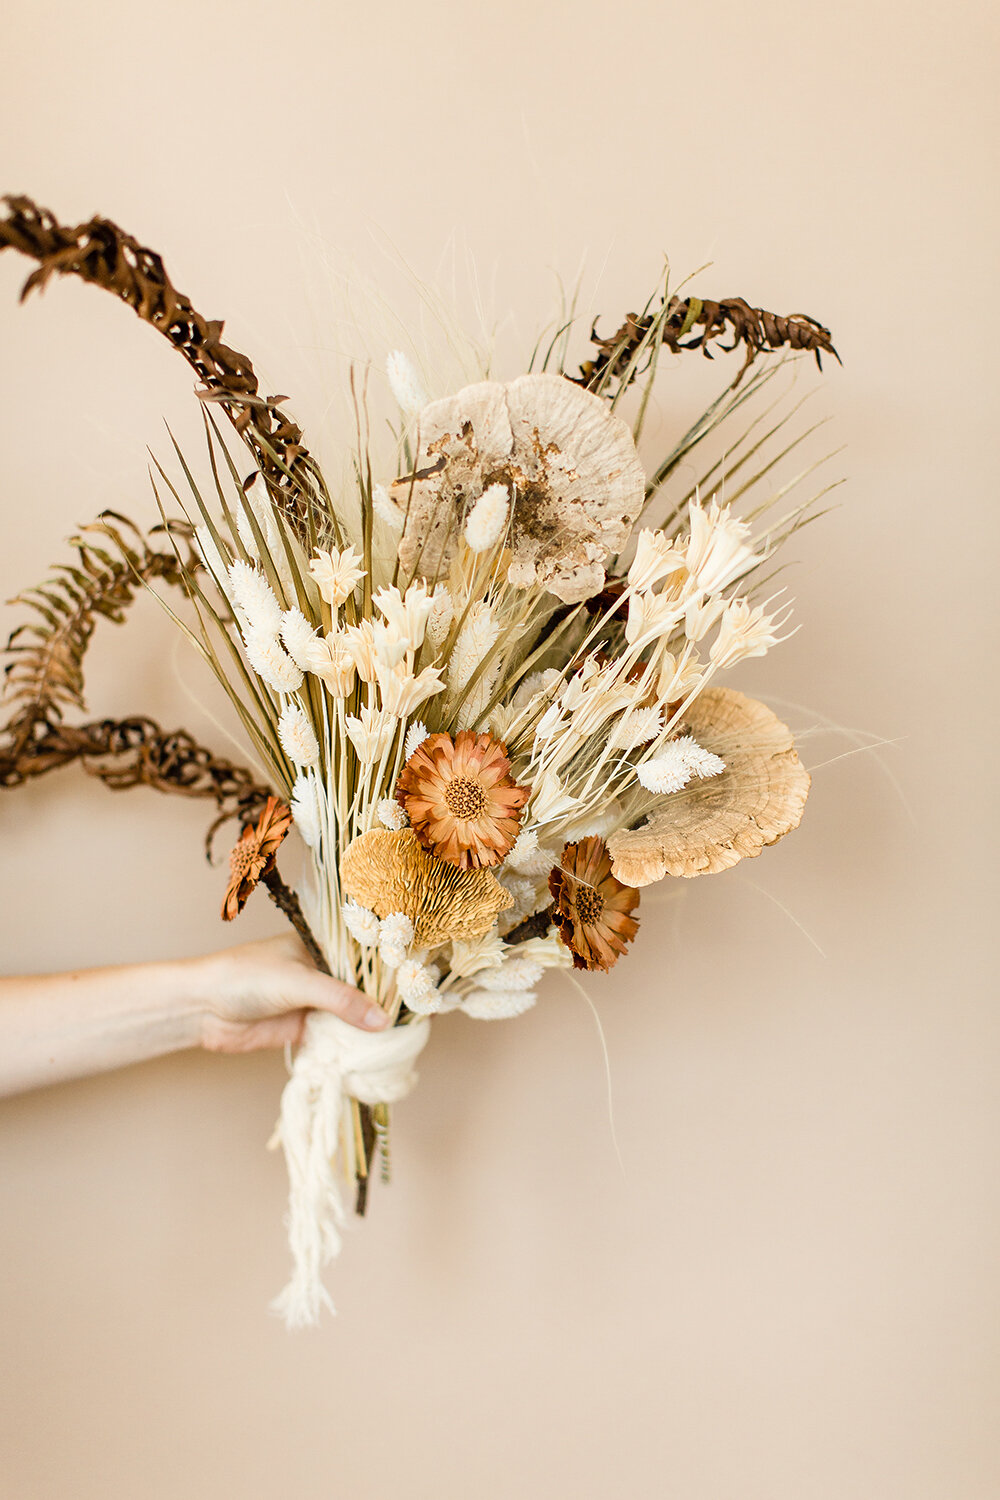 Minimalist Wabi Sabi Inspired Styled Wedding ;  Flowers by Boheme Tipi Events ;  Photography by Cheers Babe